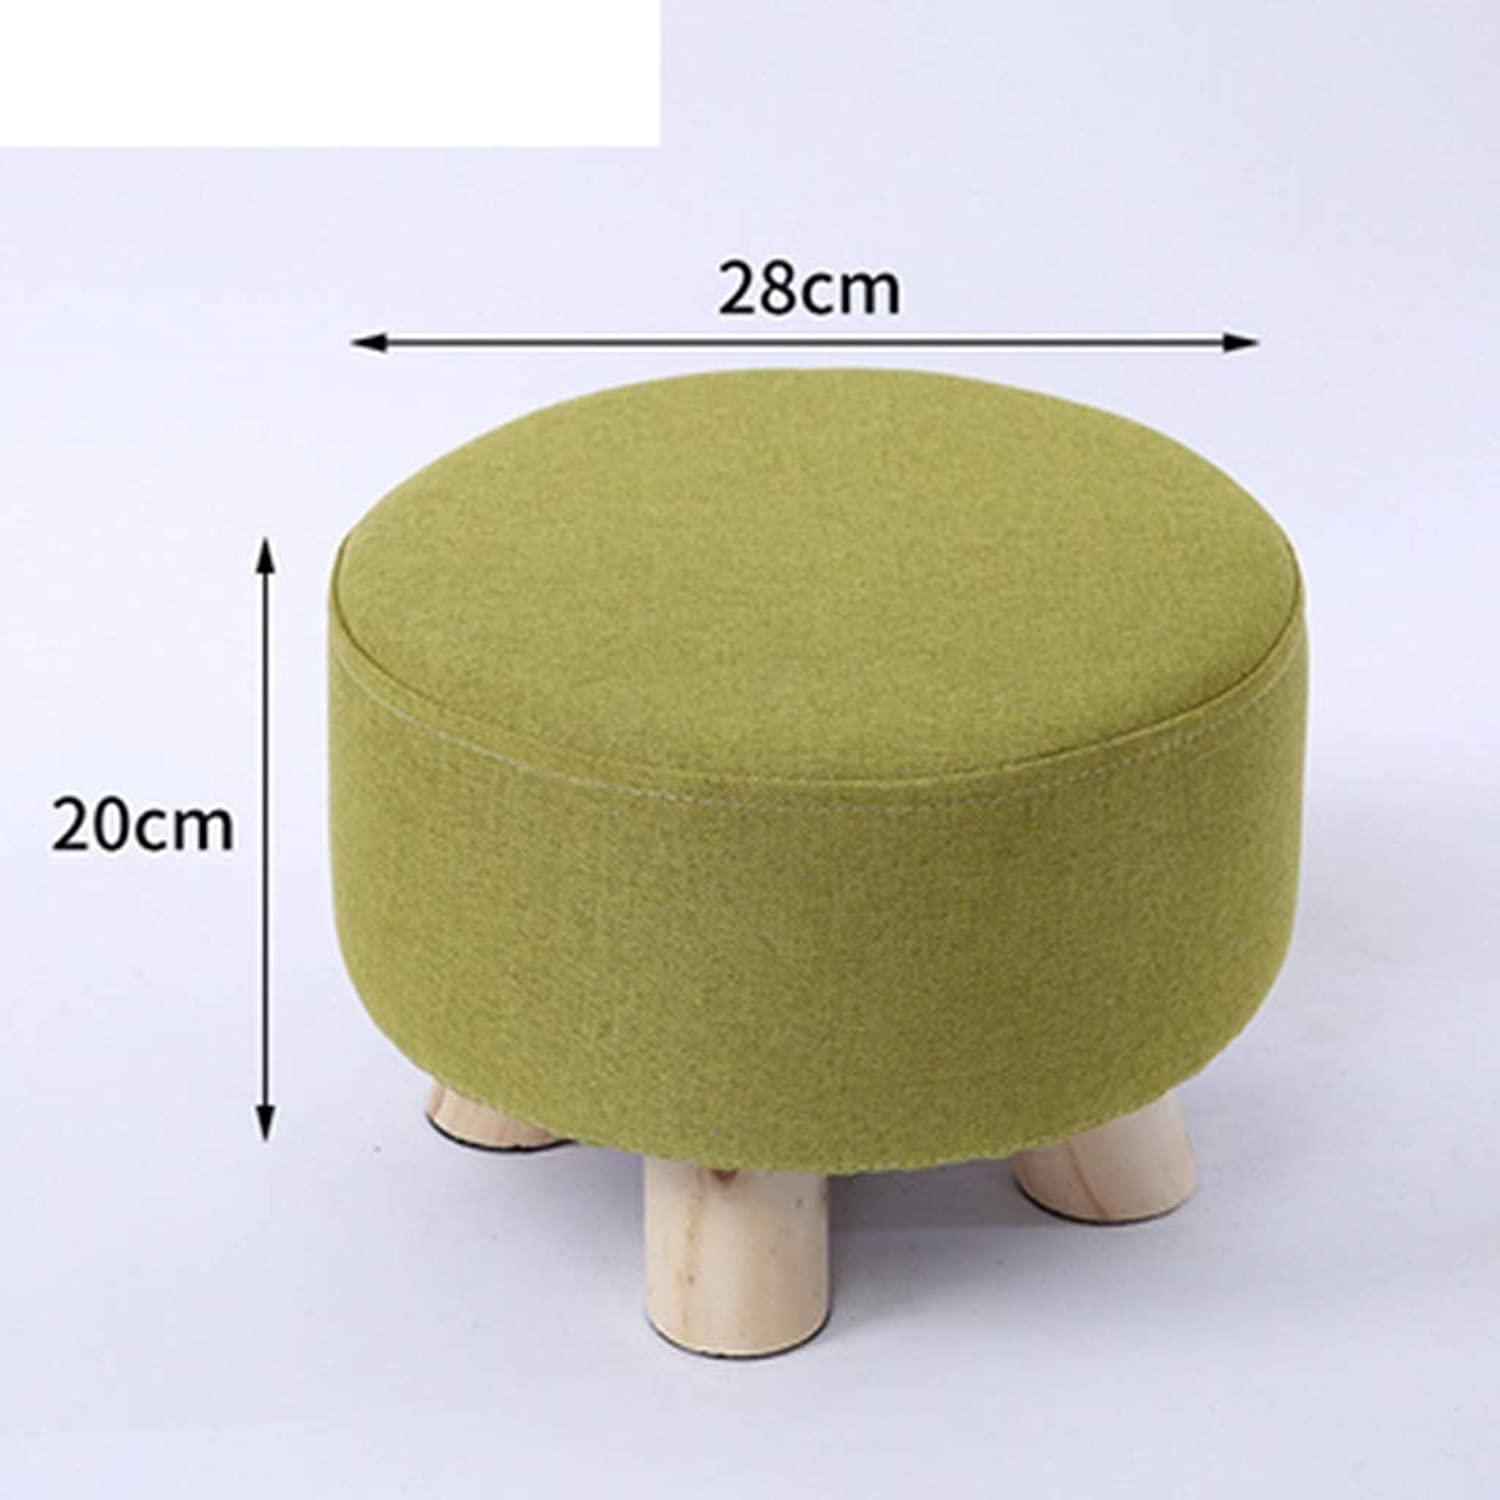 RHHWJJXB Garden Wooden Stool Round shoes Change shoes Stool Home Door Bearing Dengzi American Style Small Stool (color   F)